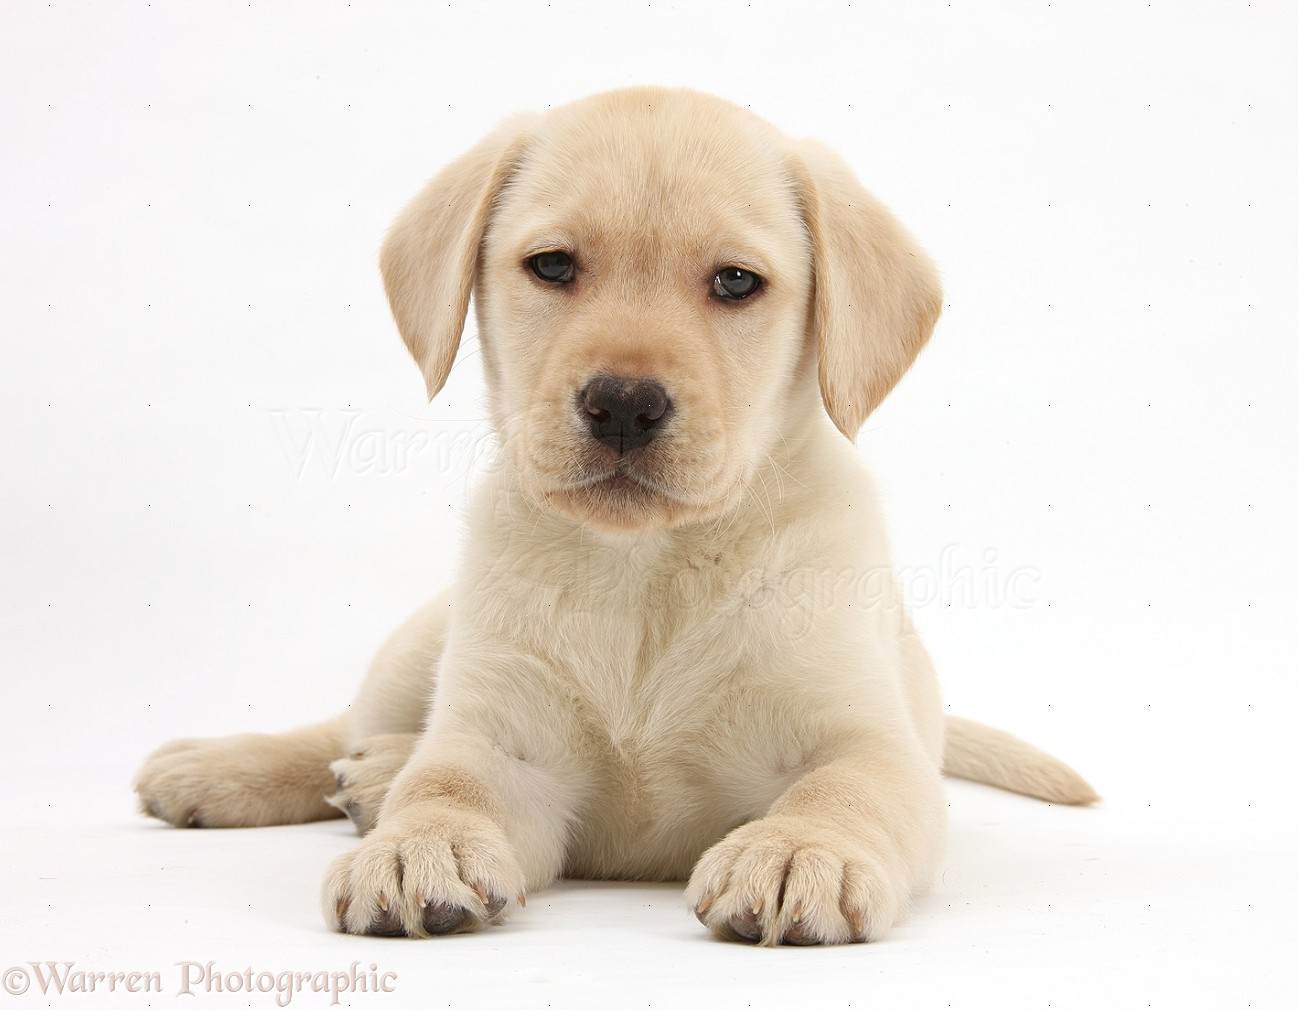 WP33558 Yellow Labrador Retriever pup  8 weeks old White And Yellow Labrador Retriever